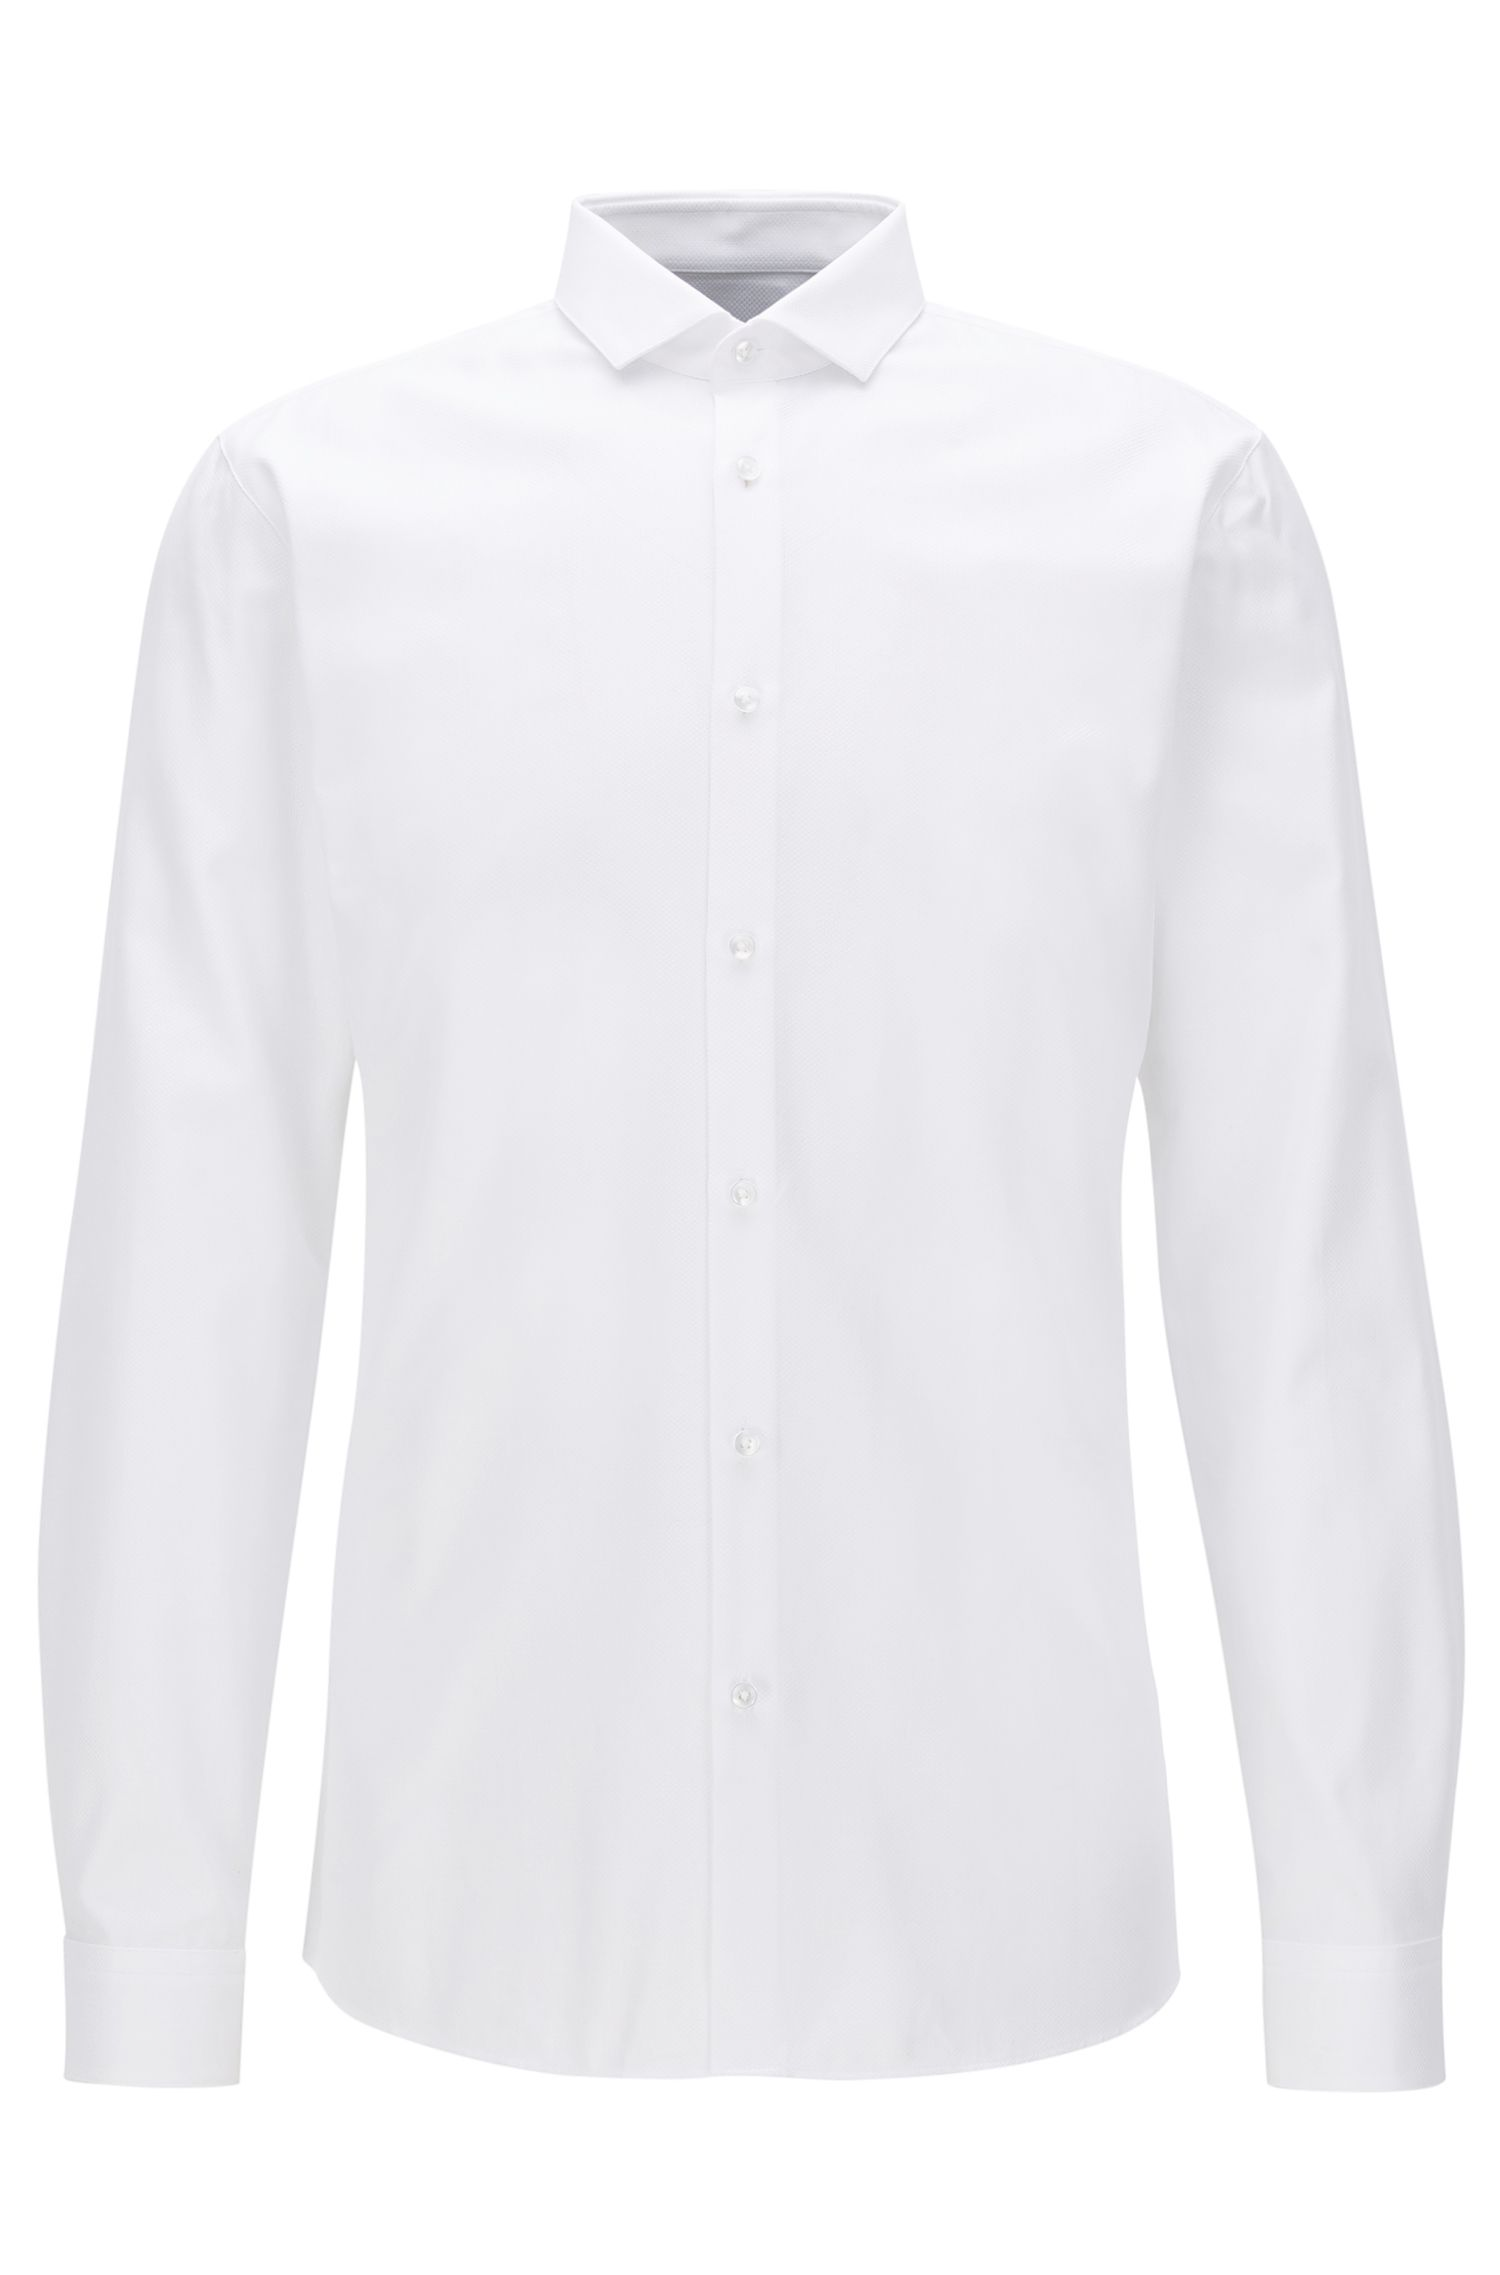 Extra-slim-fit shirt in textured two-ply cotton